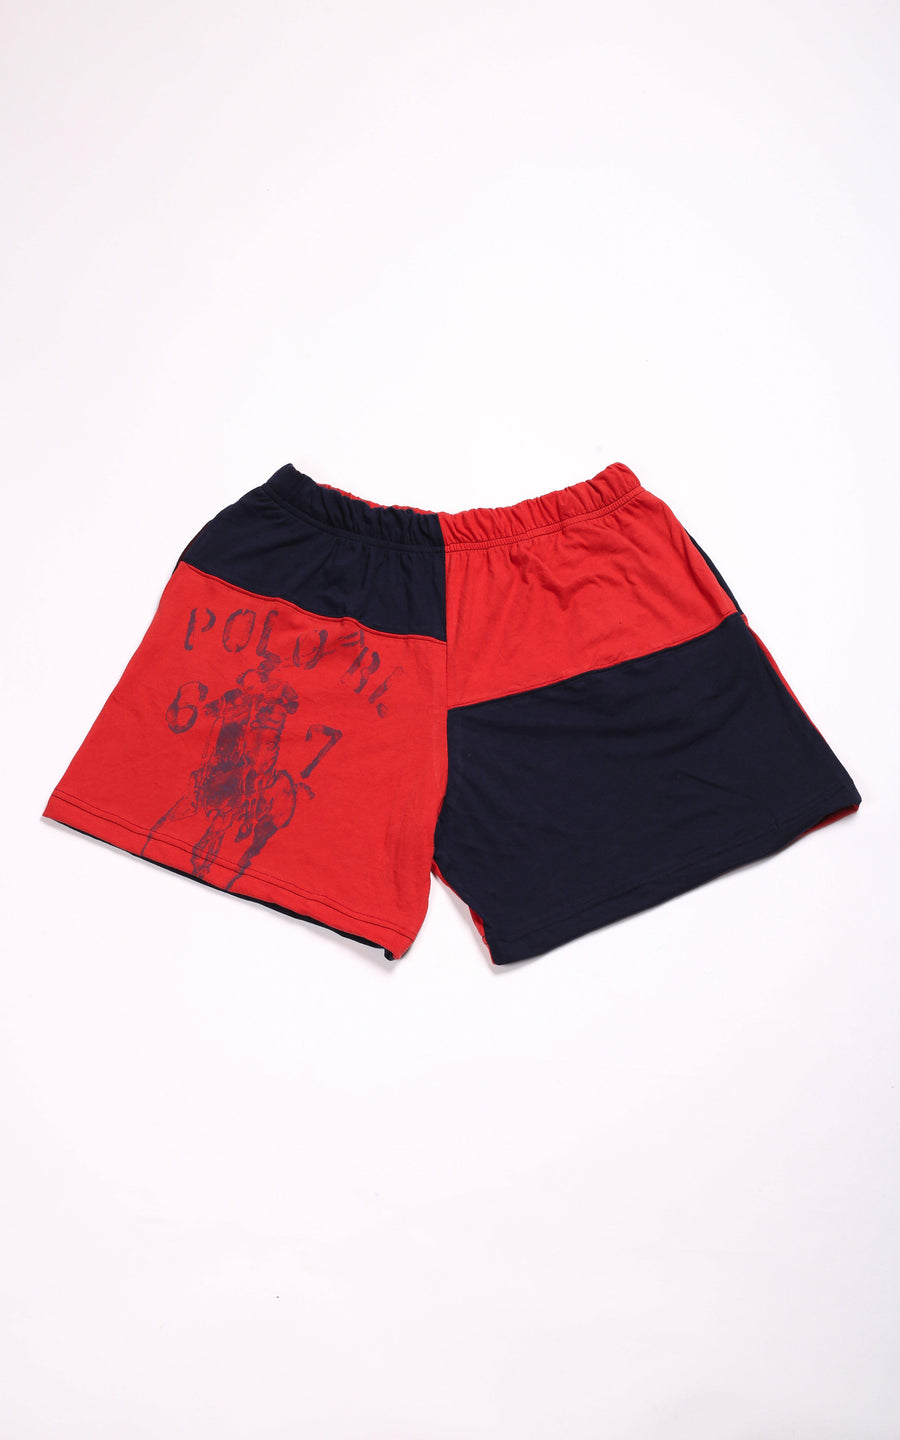 Vintage Rework Polo Patchwork Tee Shorts - L